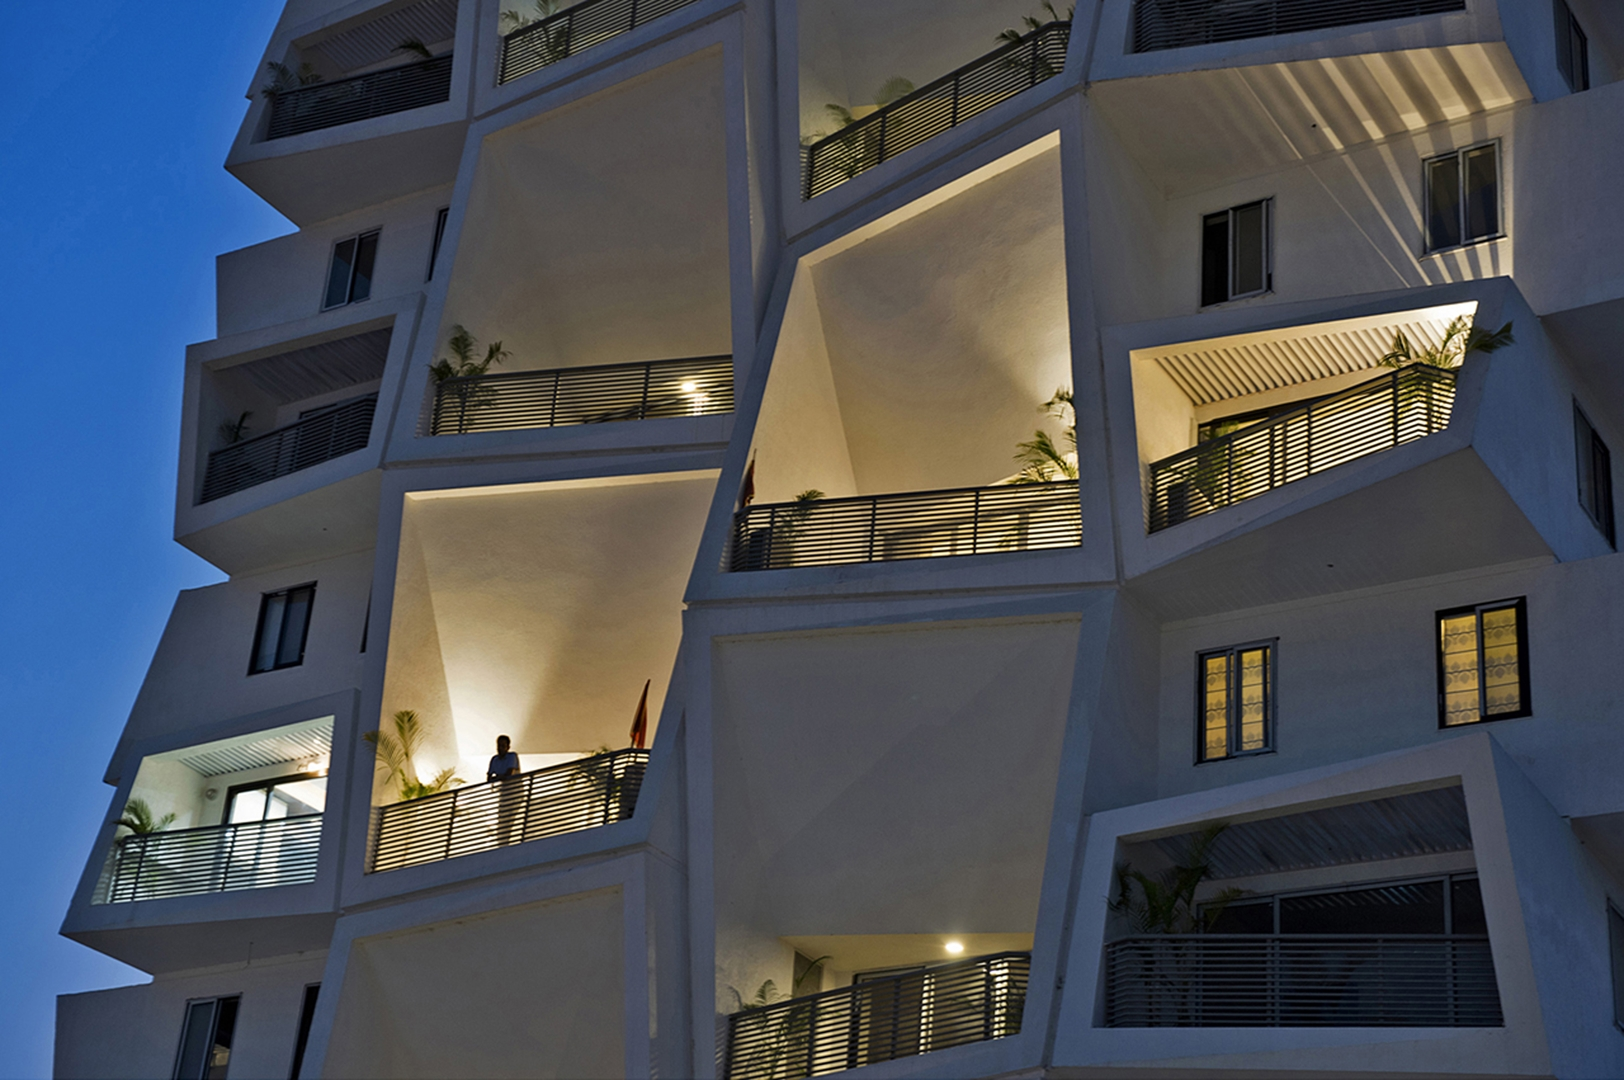 09 EAST VIEW OF DOUBLE HT TERRACES (Copy)